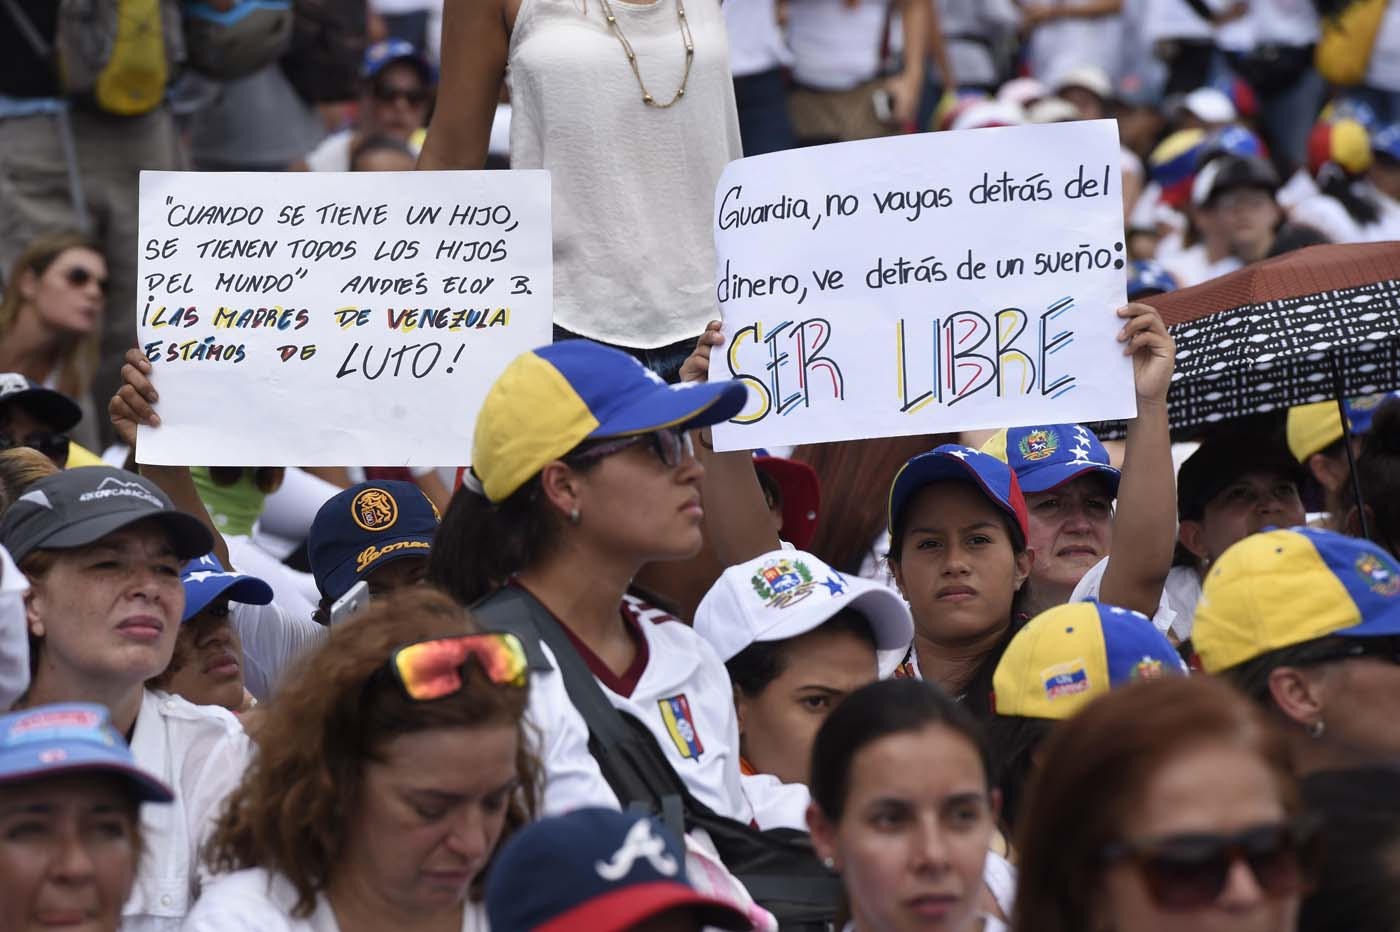 Venezuelan opposition activists take part in a women's march aimed to keep pressure on President Nicolas Maduro, whose authority is being increasingly challenged by protests and deadly unrest, in Caracas on May 6, 2017. The death toll since April, when the protests intensified after Maduro's administration and the courts stepped up efforts to undermine the opposition, is at least 36 according to prosecutors. / AFP PHOTO / JUAN BARRETO